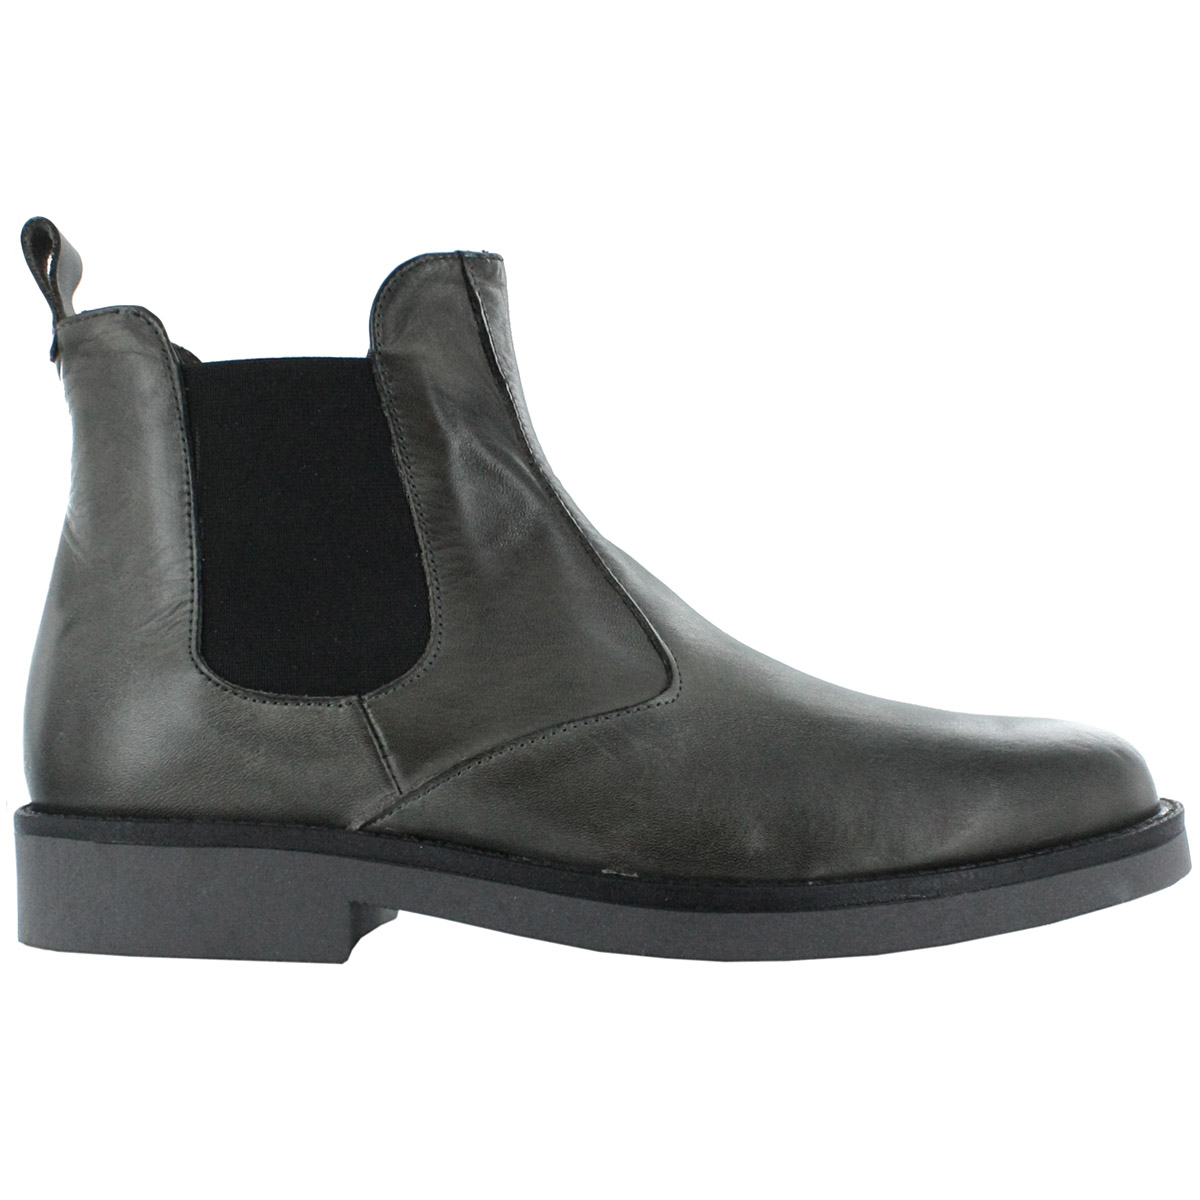 scarpe italiane herren chelsea boots bottoni leder stiefel stiefeletten schuhe ebay. Black Bedroom Furniture Sets. Home Design Ideas